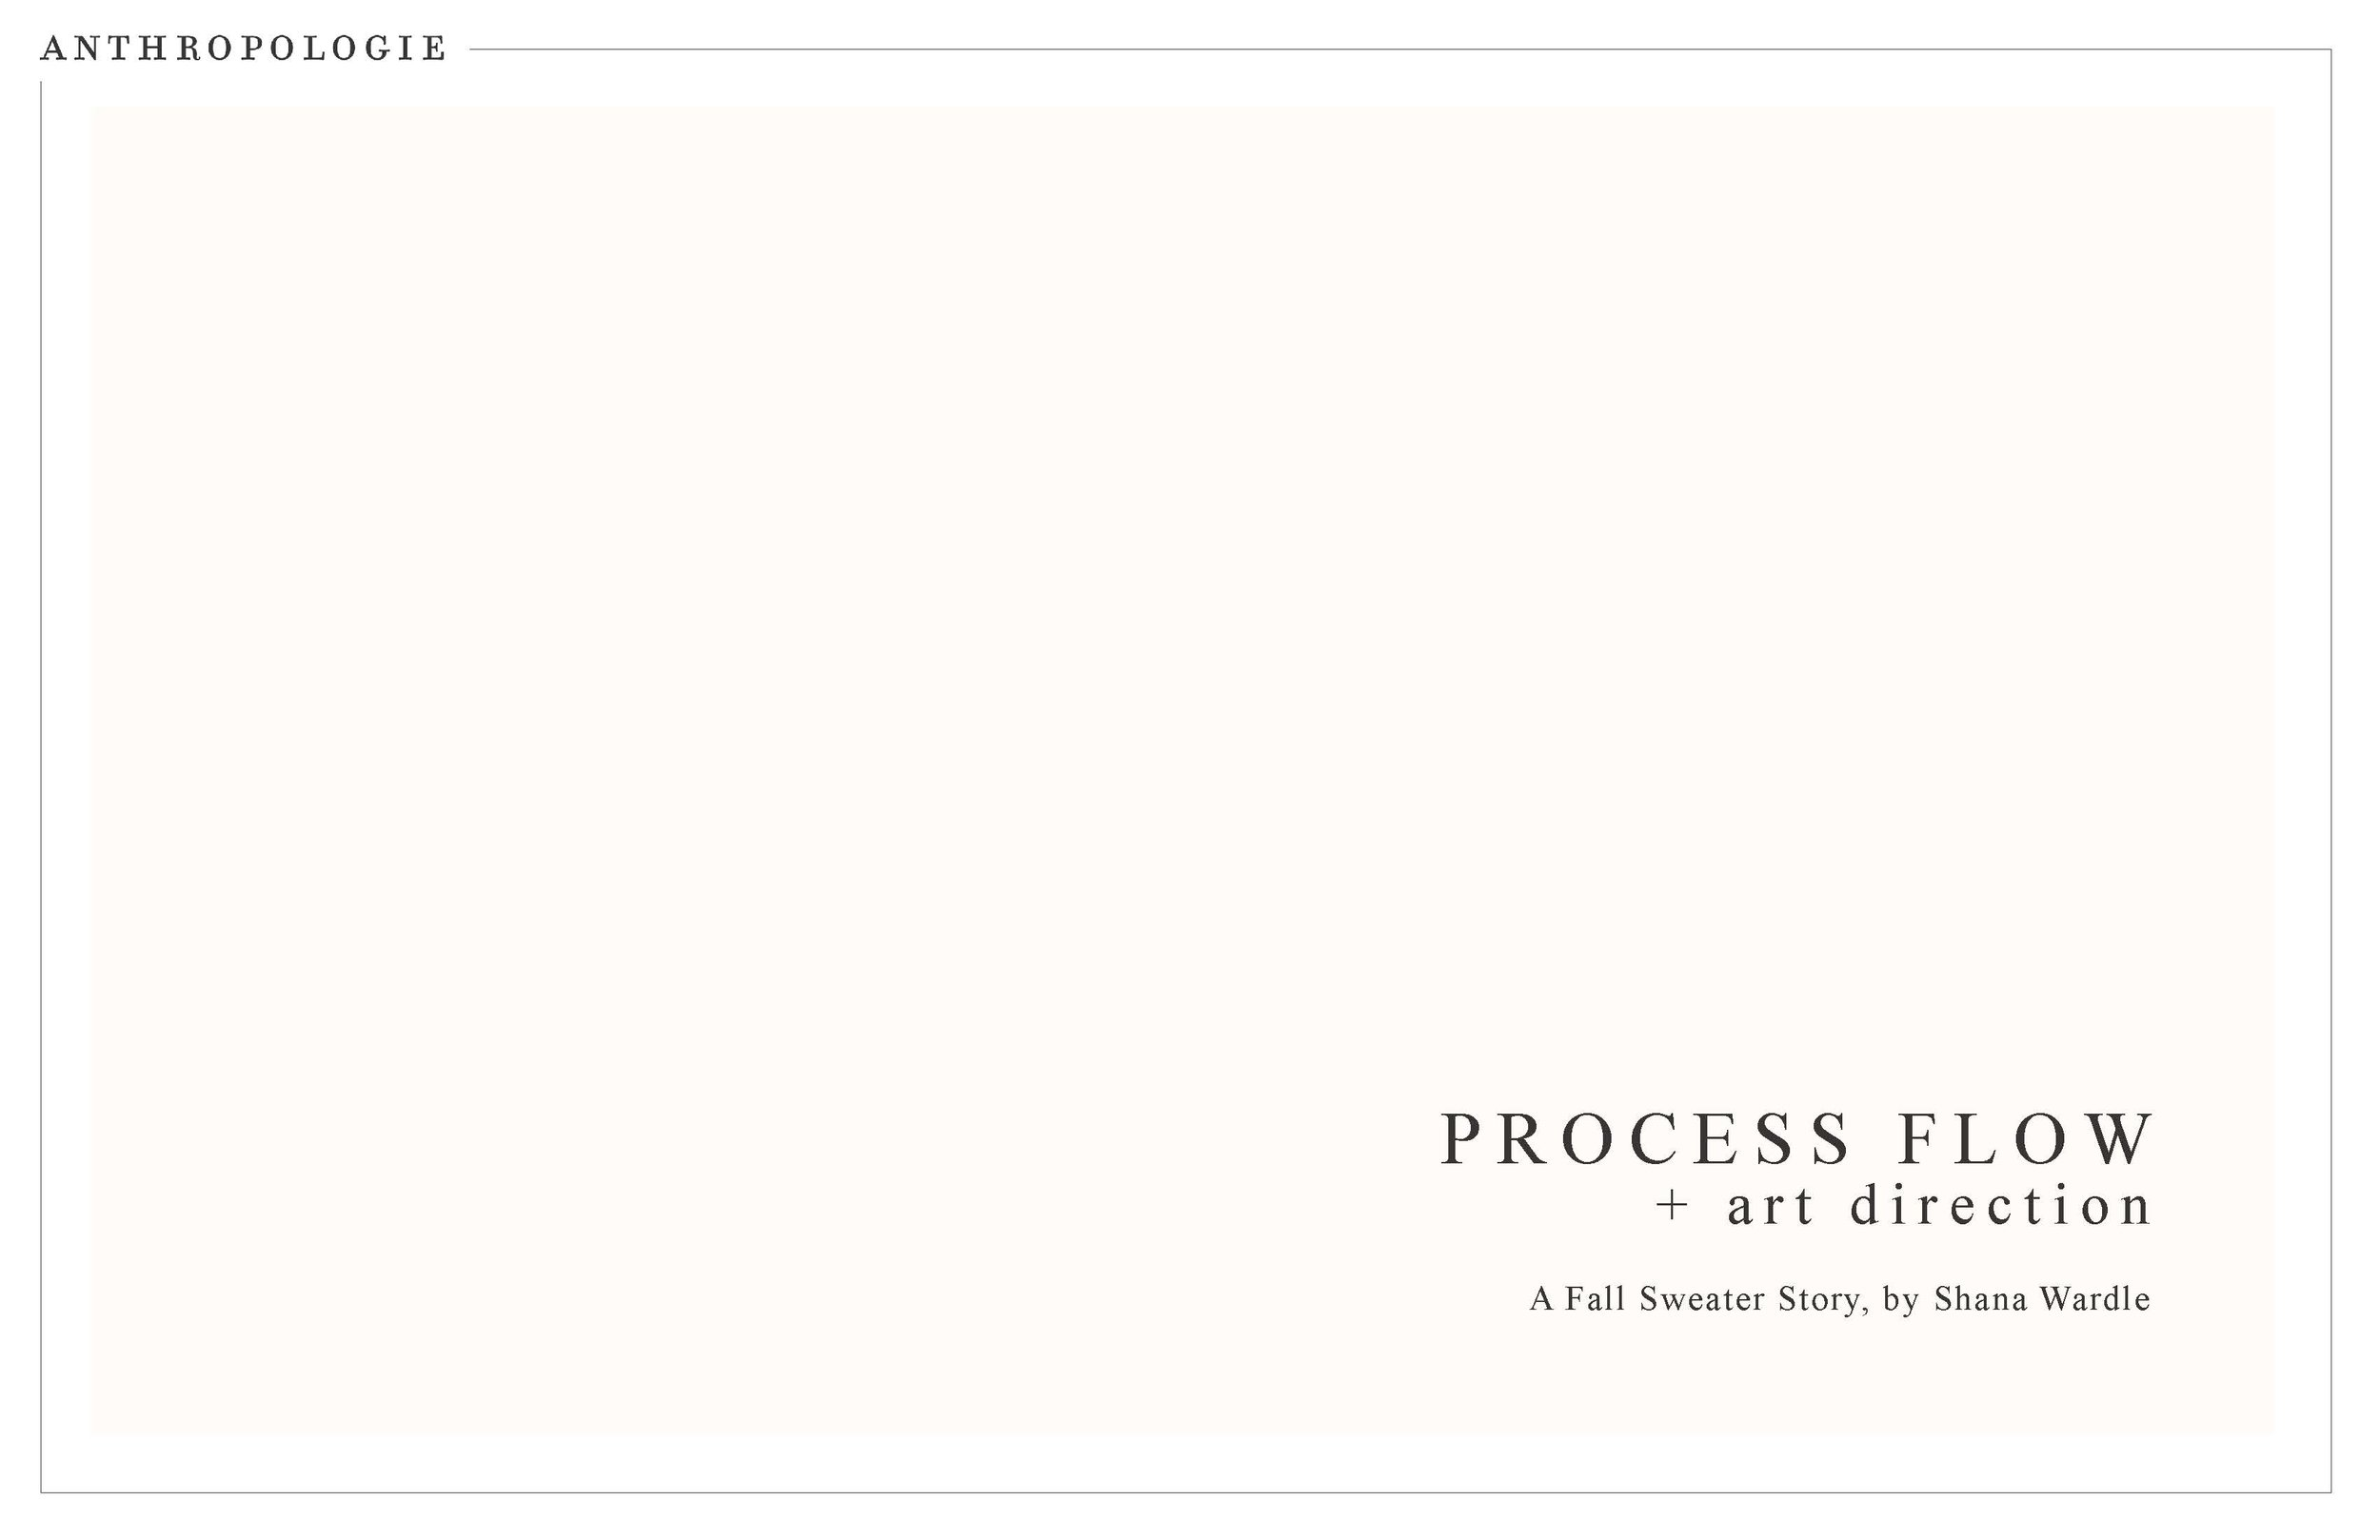 Anthropologie_Art_Direction_Process_01_Page_01.jpg